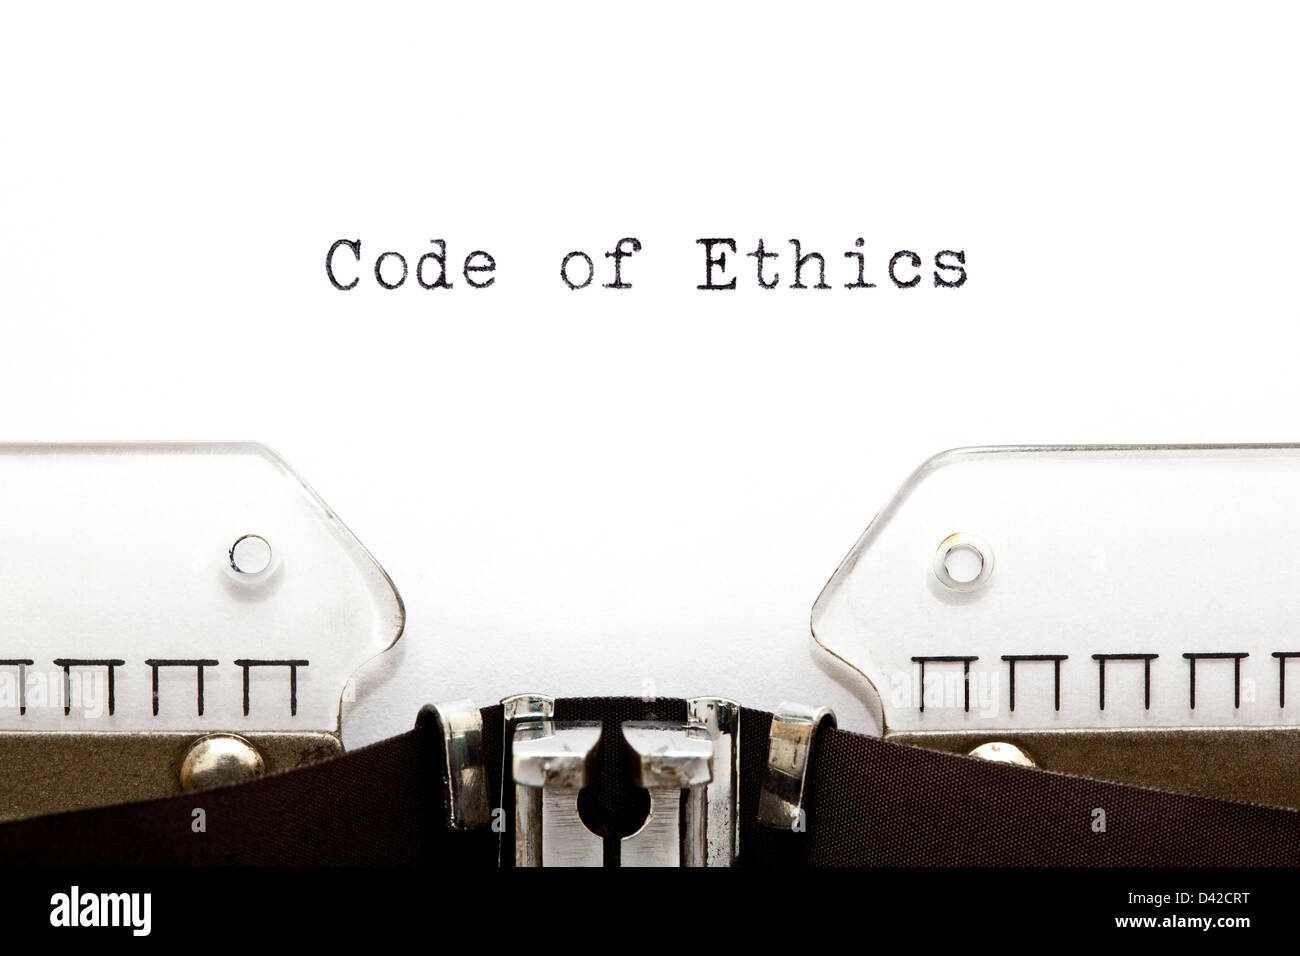 Code of Ethics printed on an old typewriter. - Stock Image